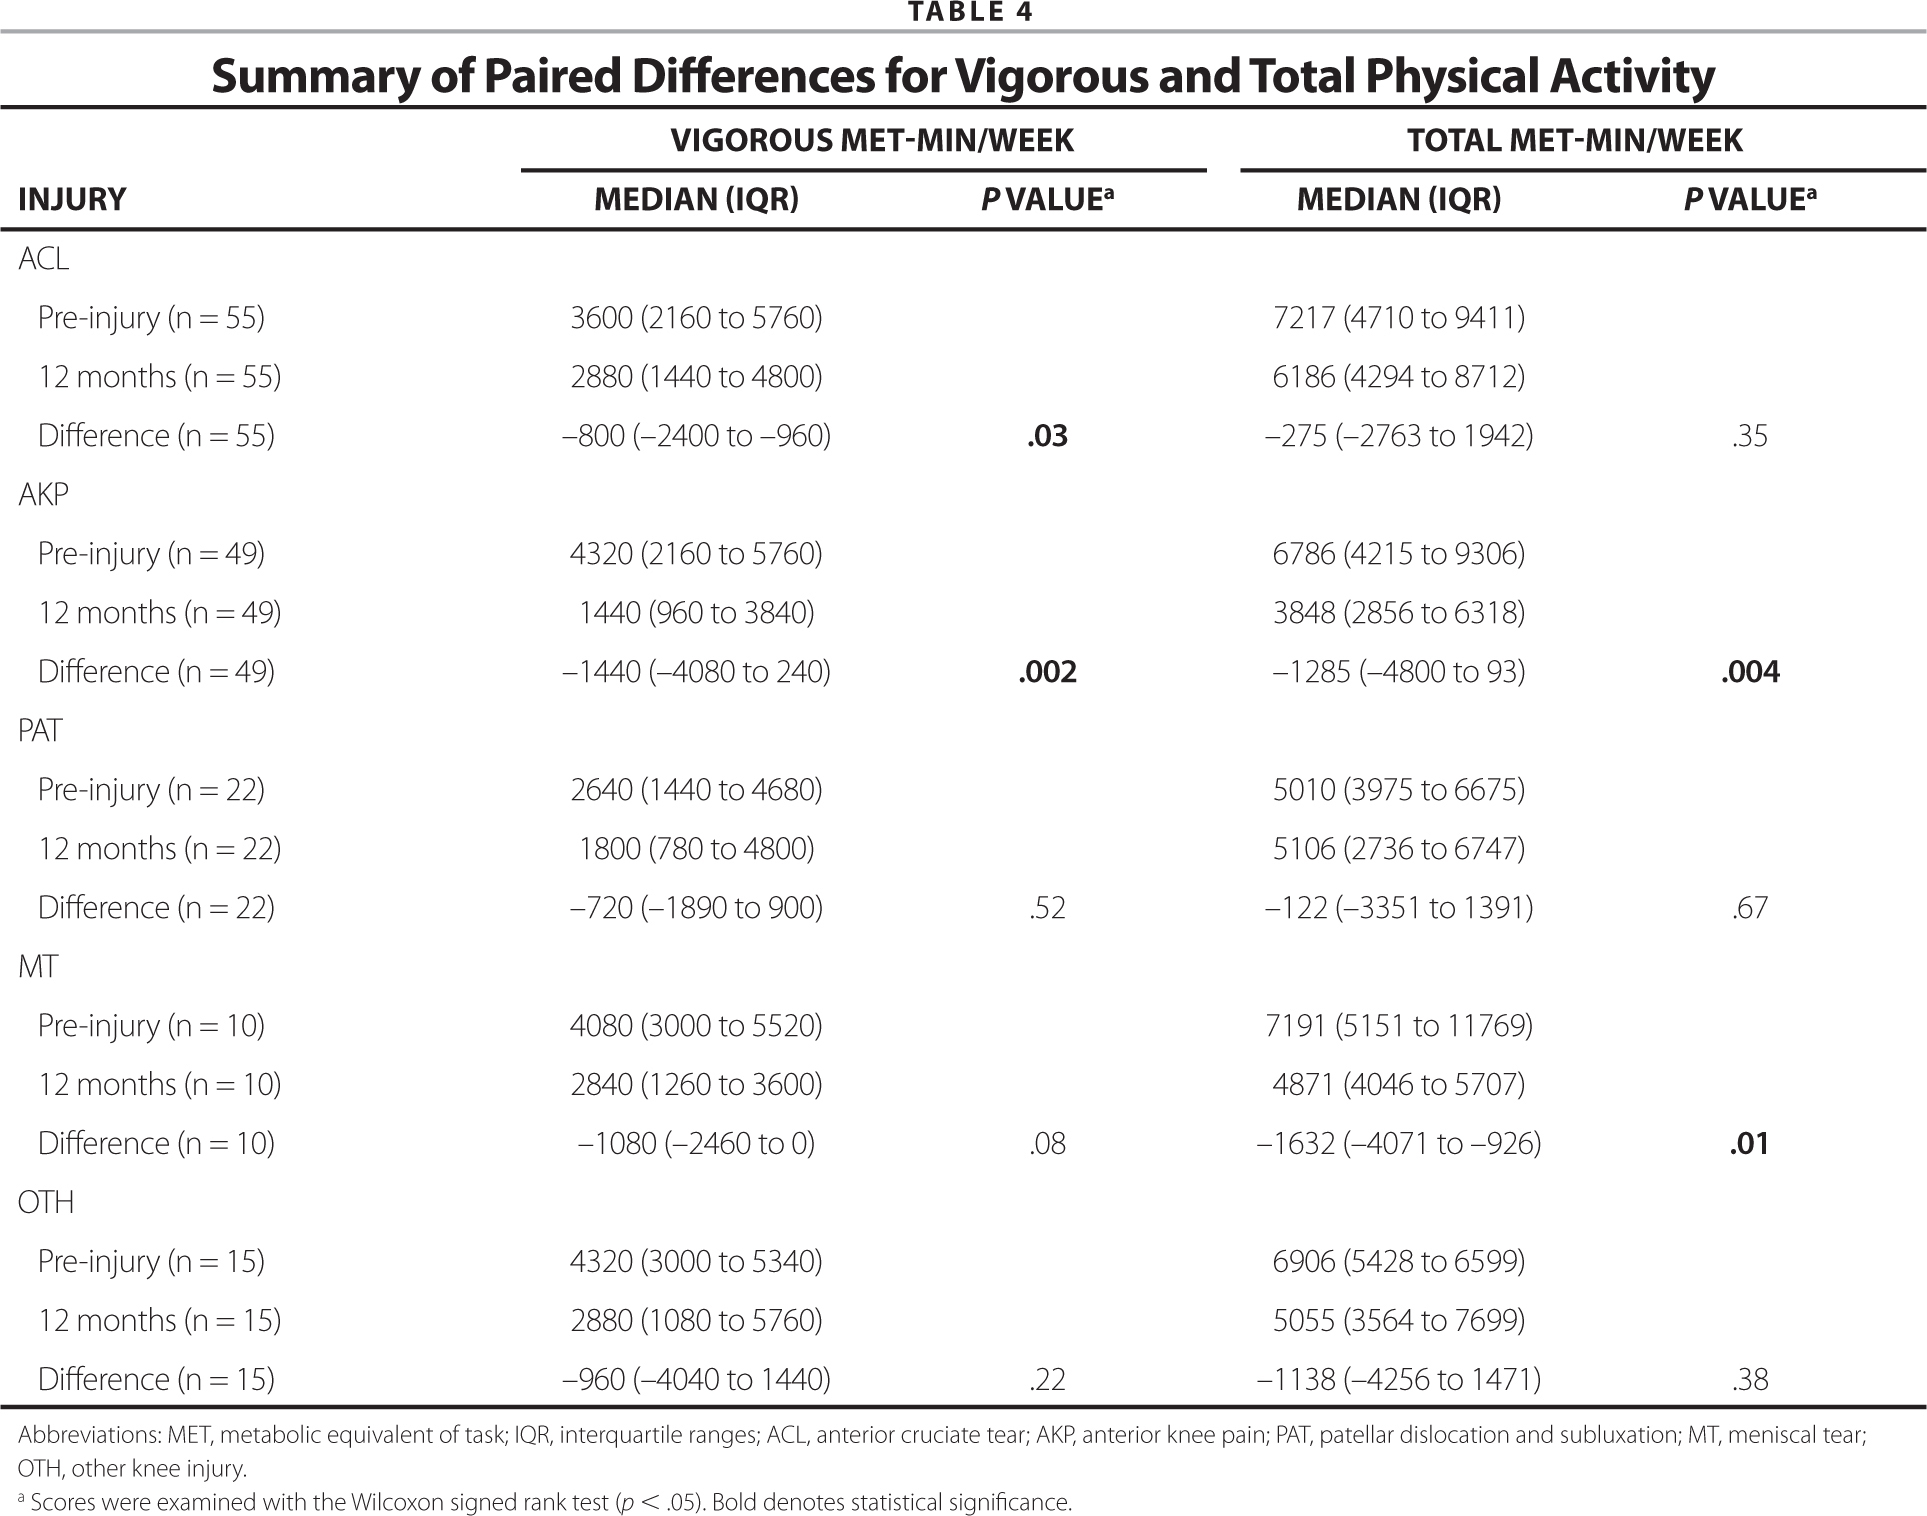 Summary of Paired Differences for Vigorous and Total Physical Activity